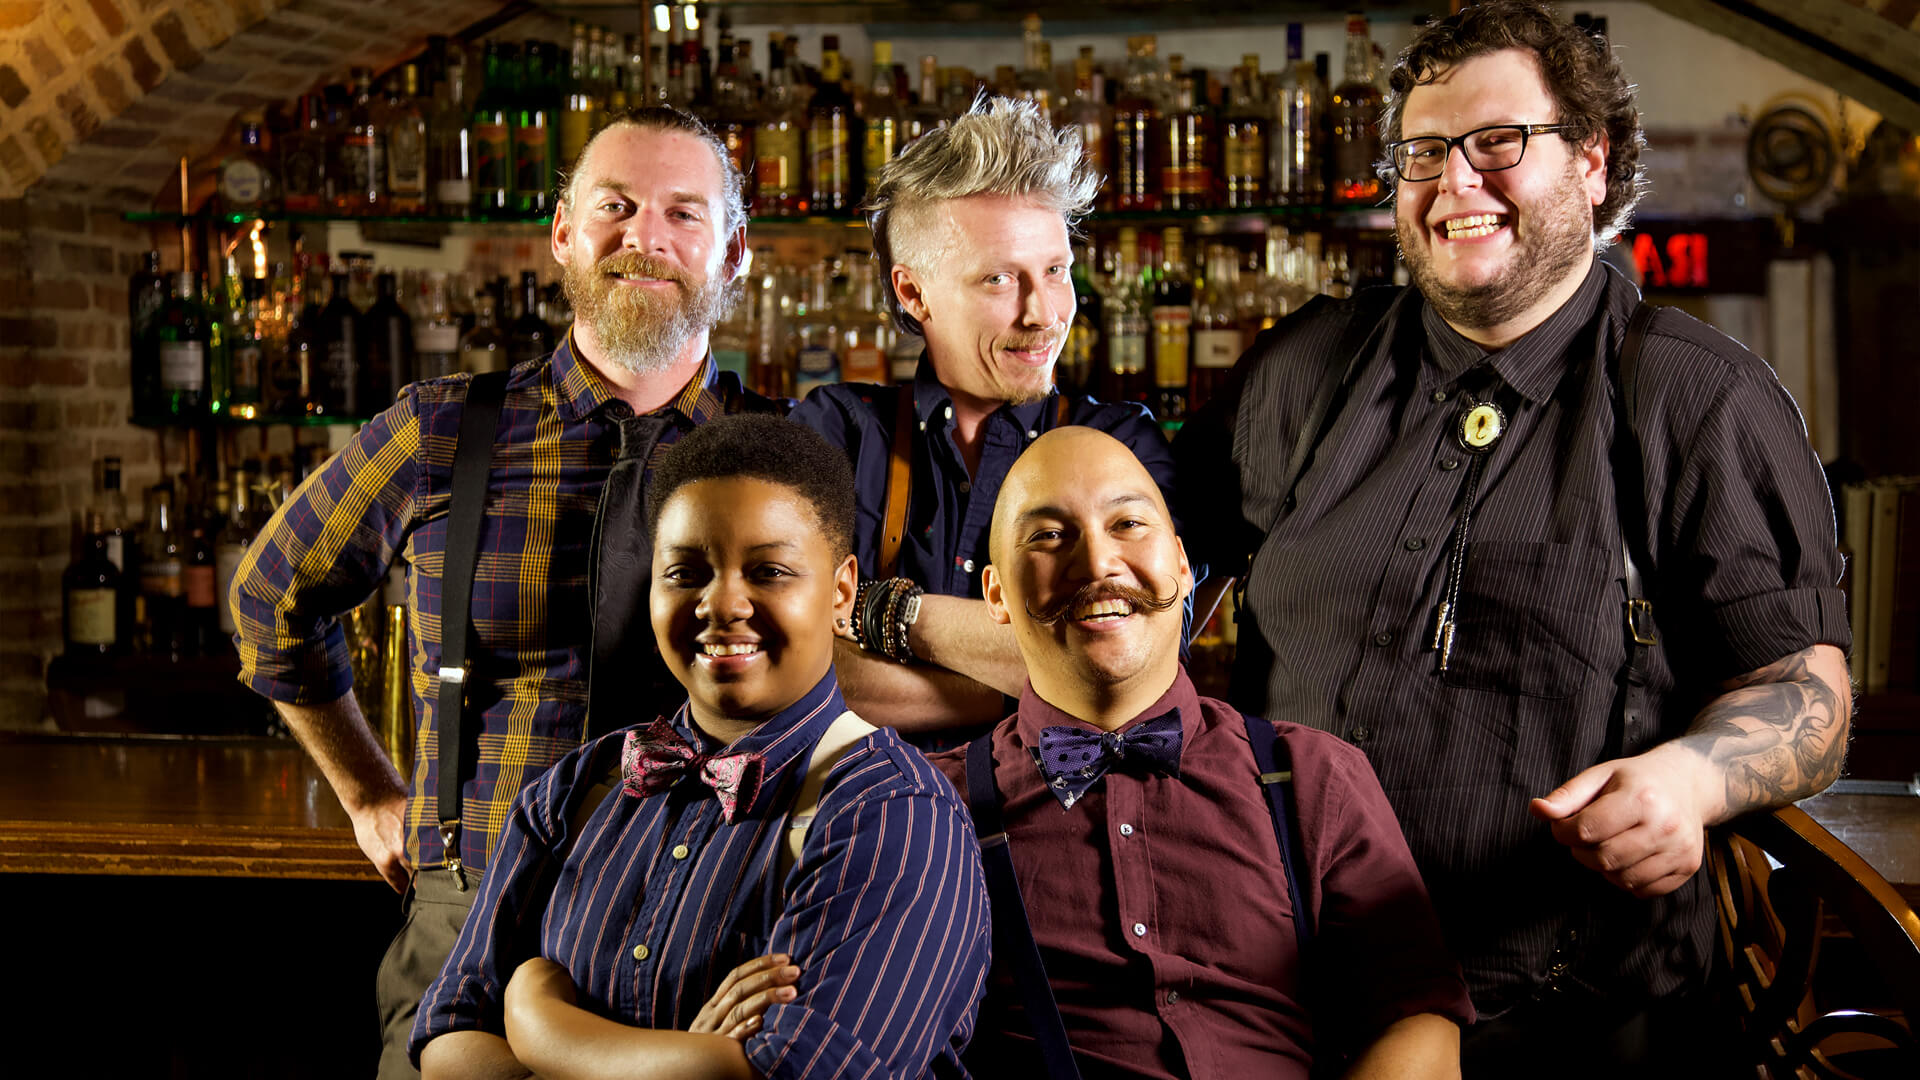 Team of Prohibition bartender experts that teach the Cocktail Classes at Savannah Speakeasy